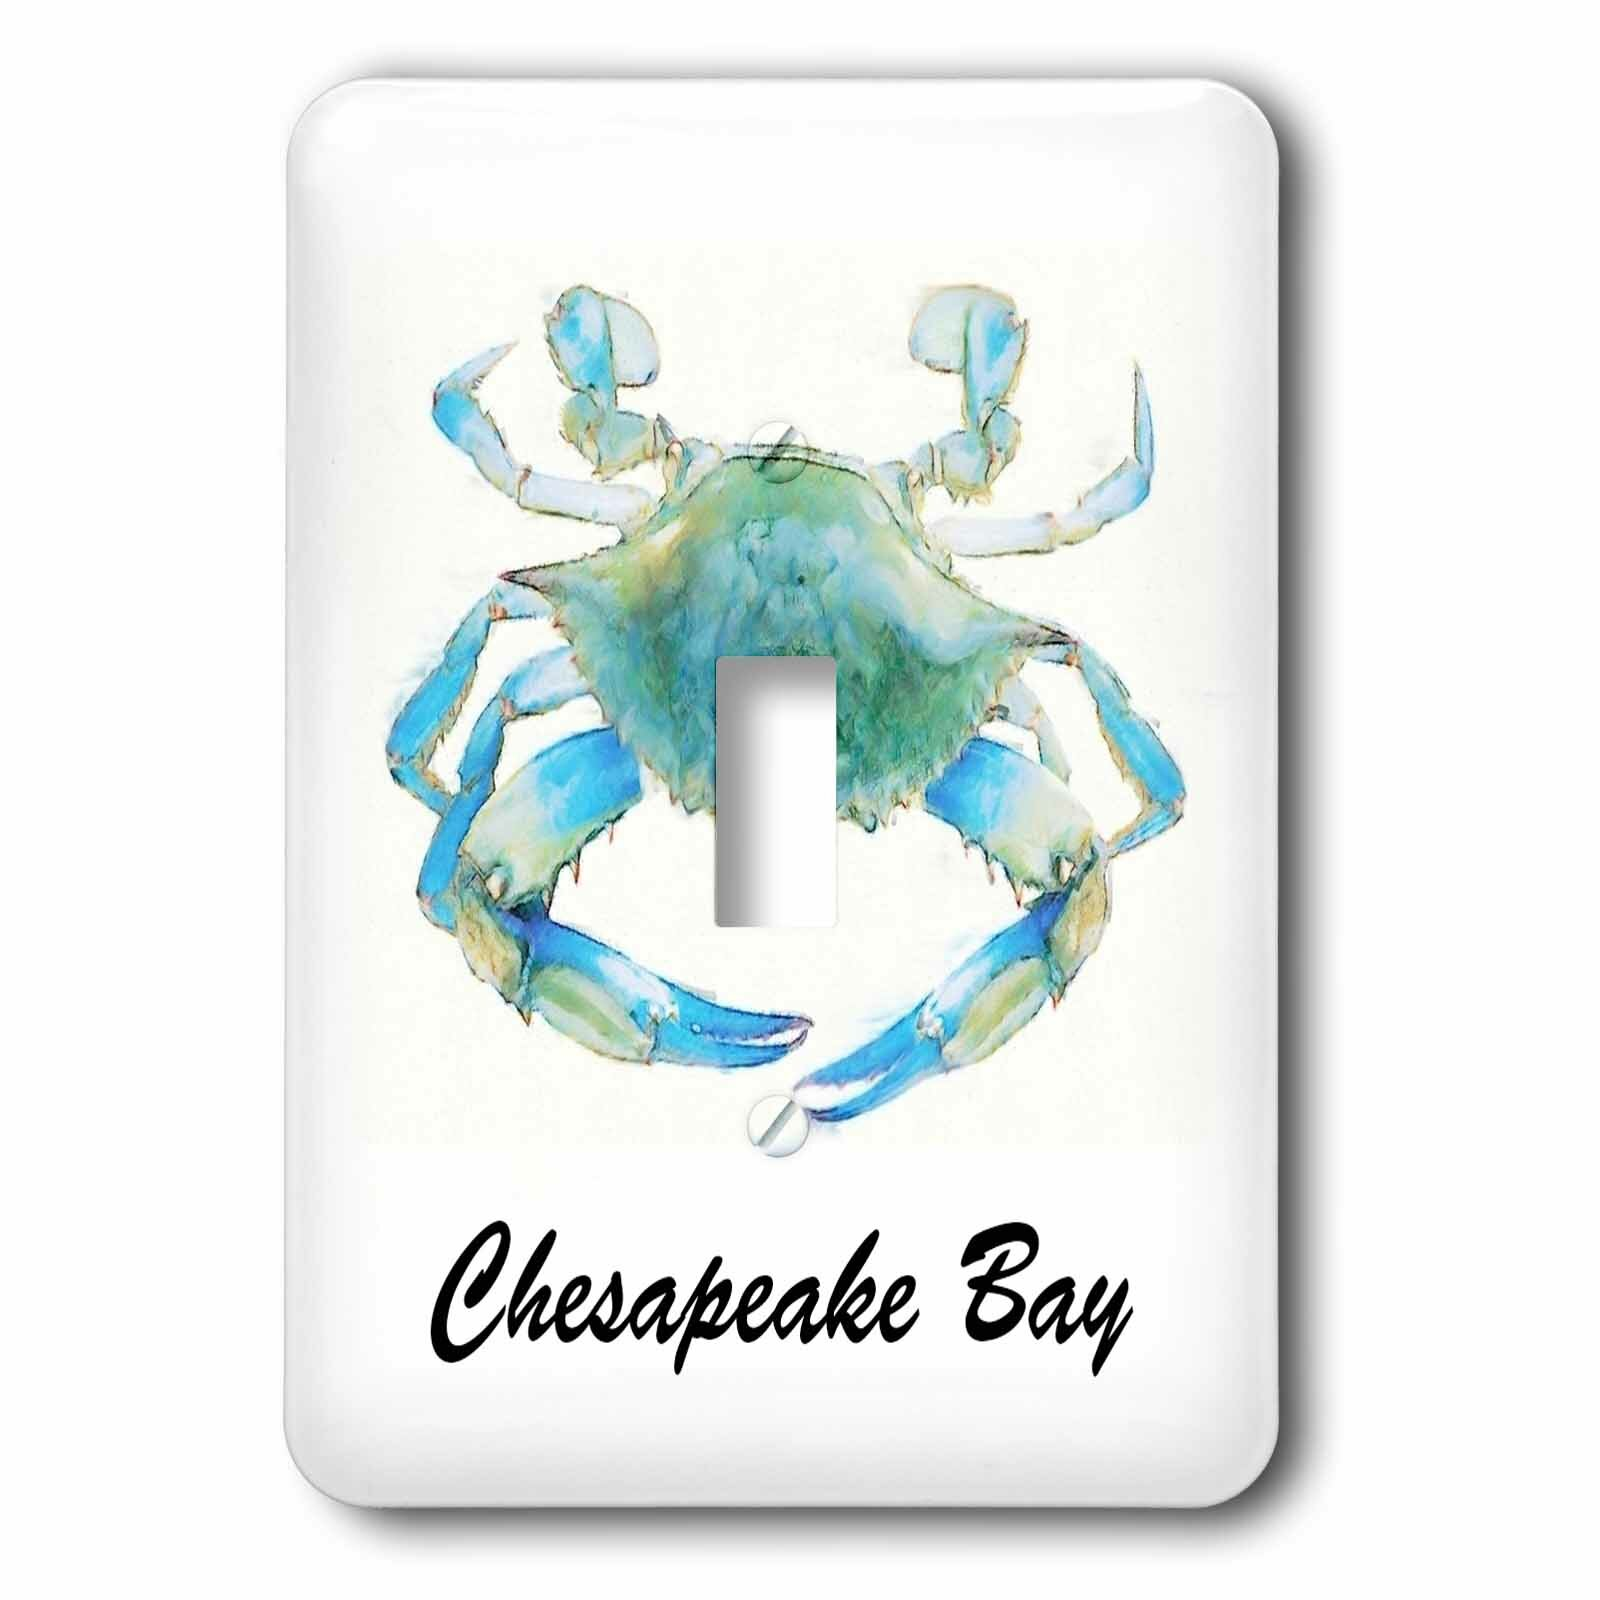 3drose Chesapeake Bay 1 Gang Toggle Light Switch Wall Plate Wayfair